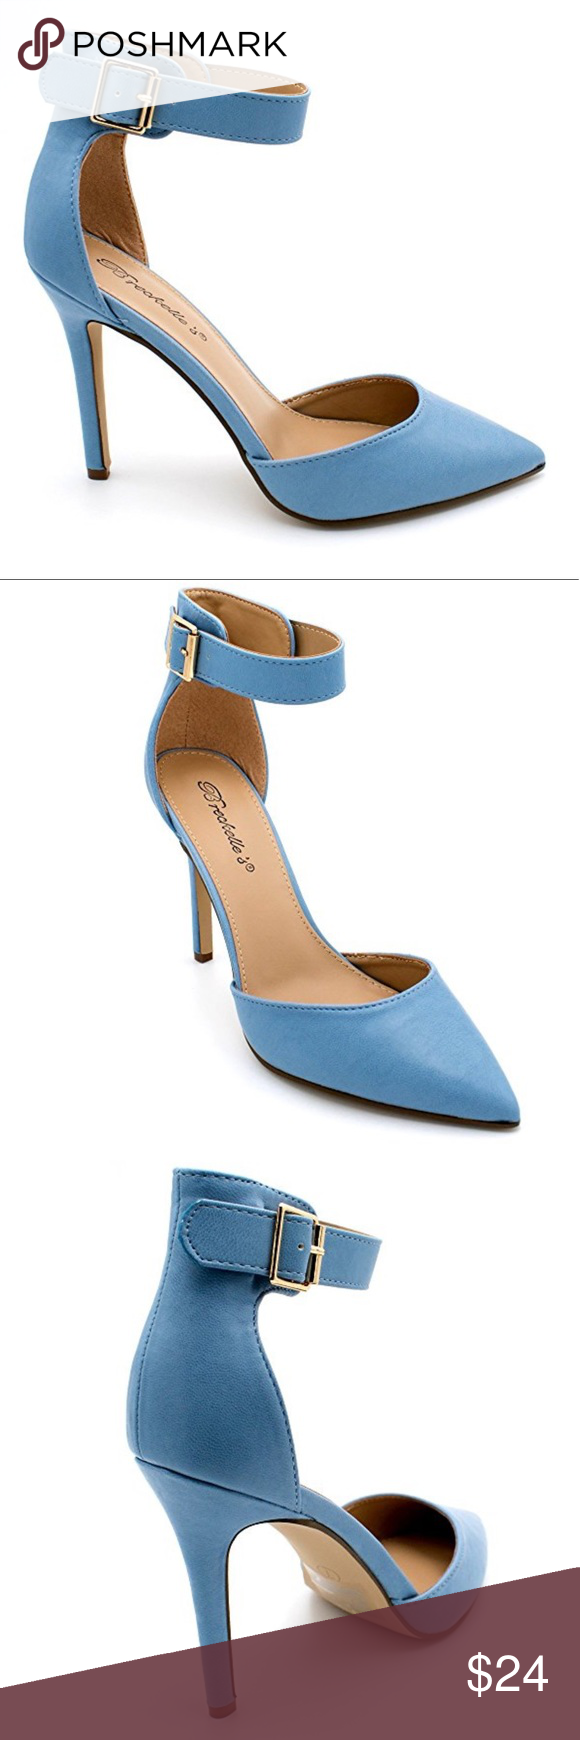 1046e0c2bb16 Light Blue Ankle Strap Pump Heels The perfect work to play d orsay is  finally here for all your outfit needs. Pairs perfectly with your trendy  looks.